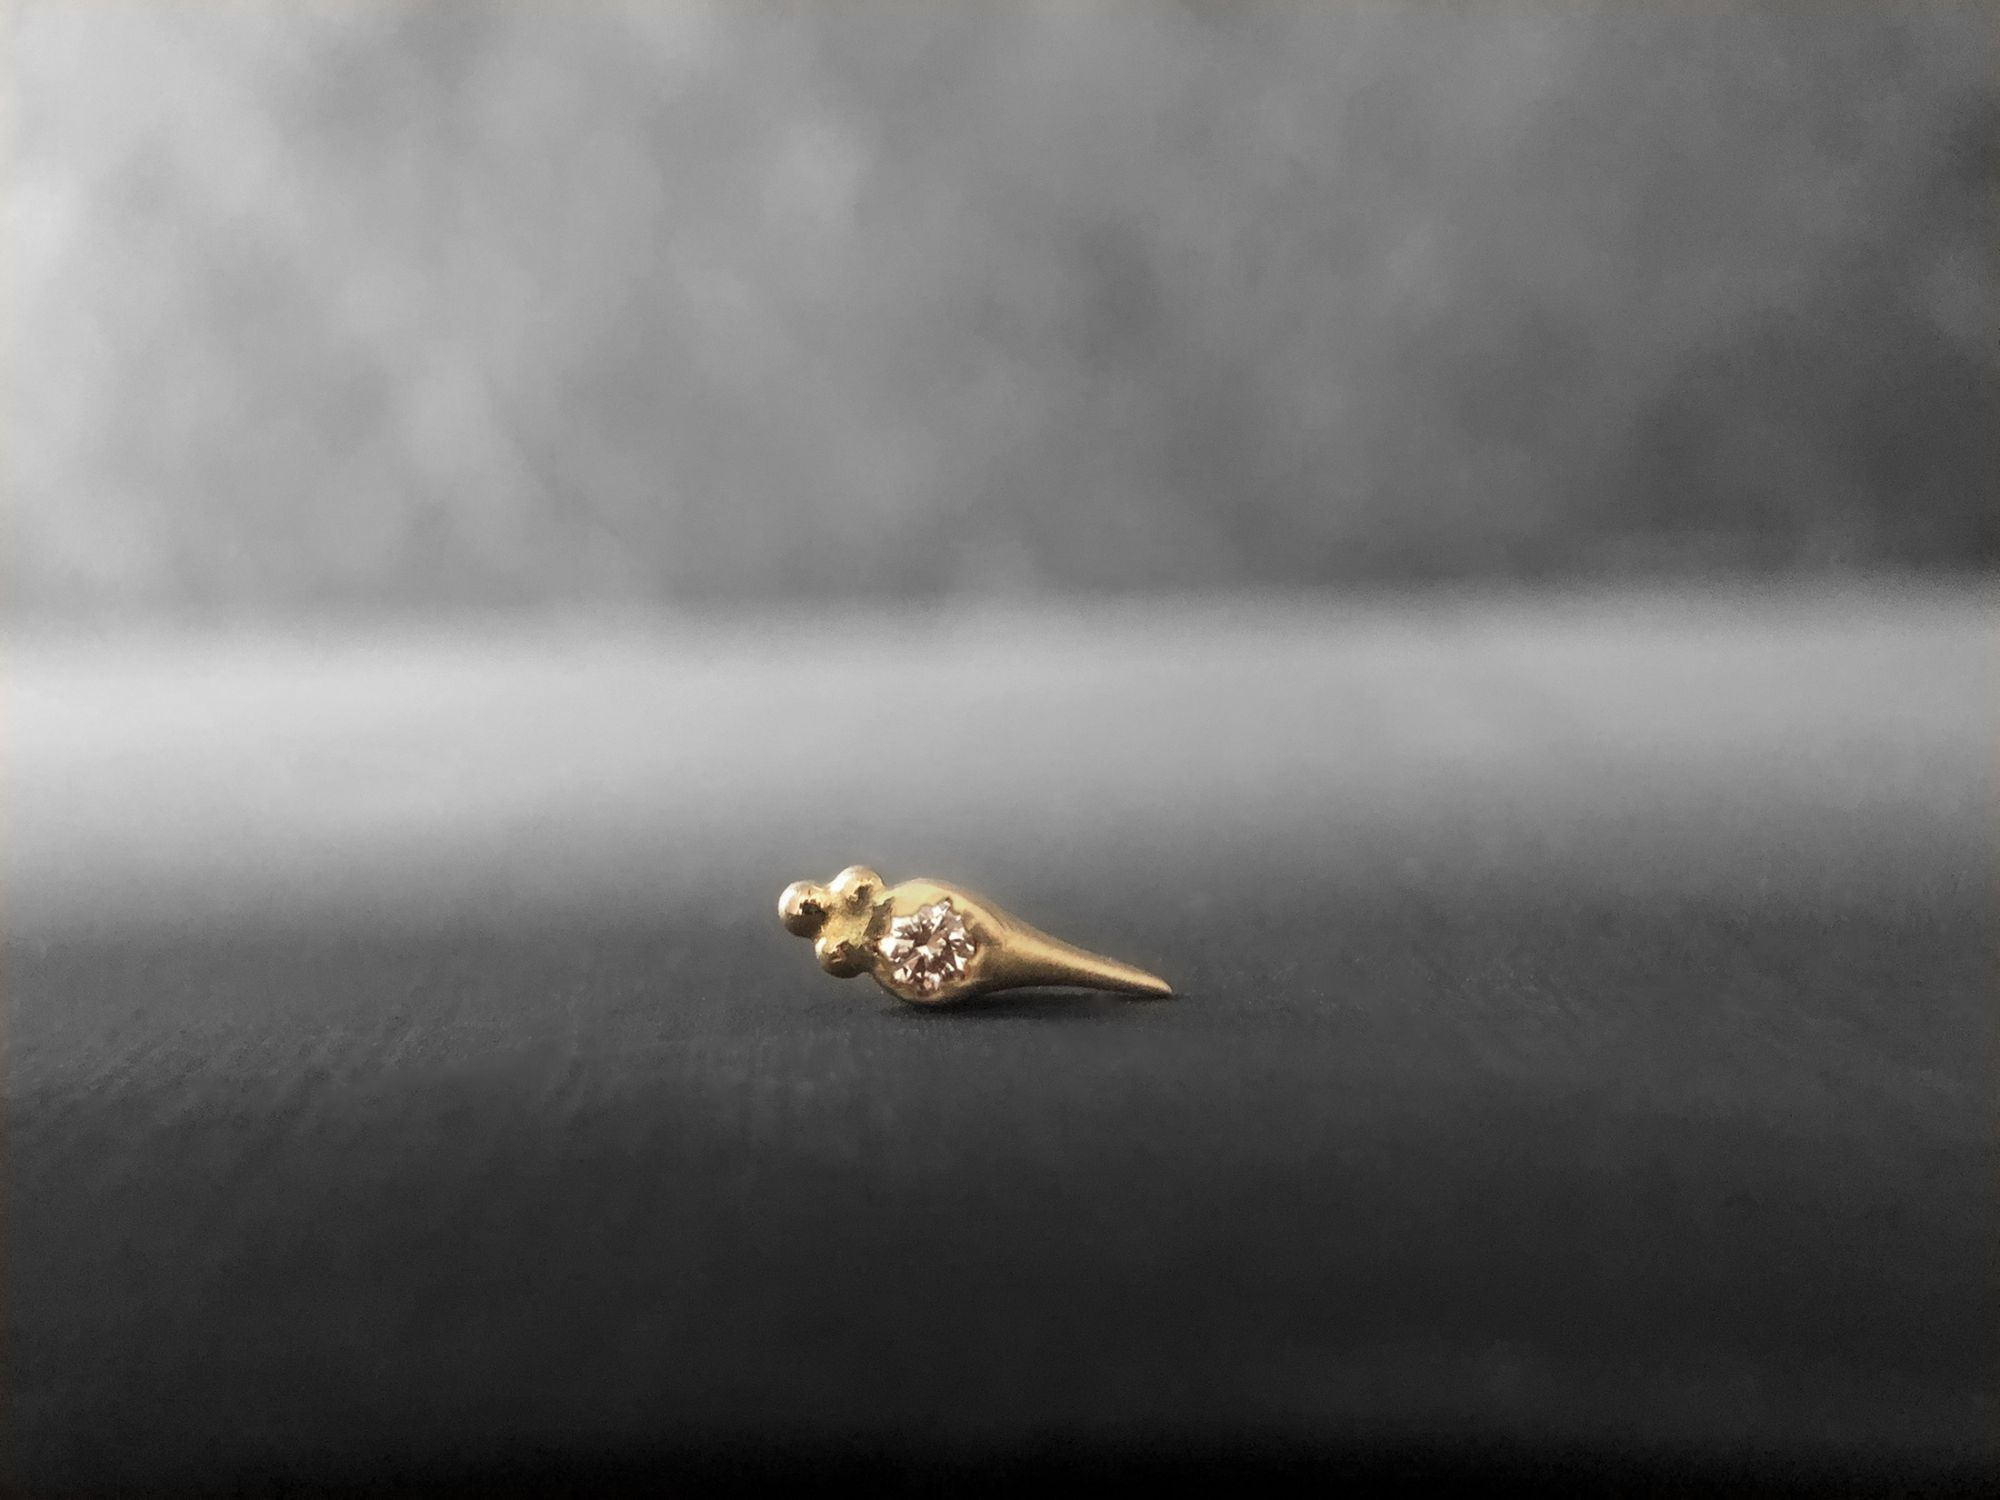 Round Sword honey diamond stud earring by Emmanuelle Zysman